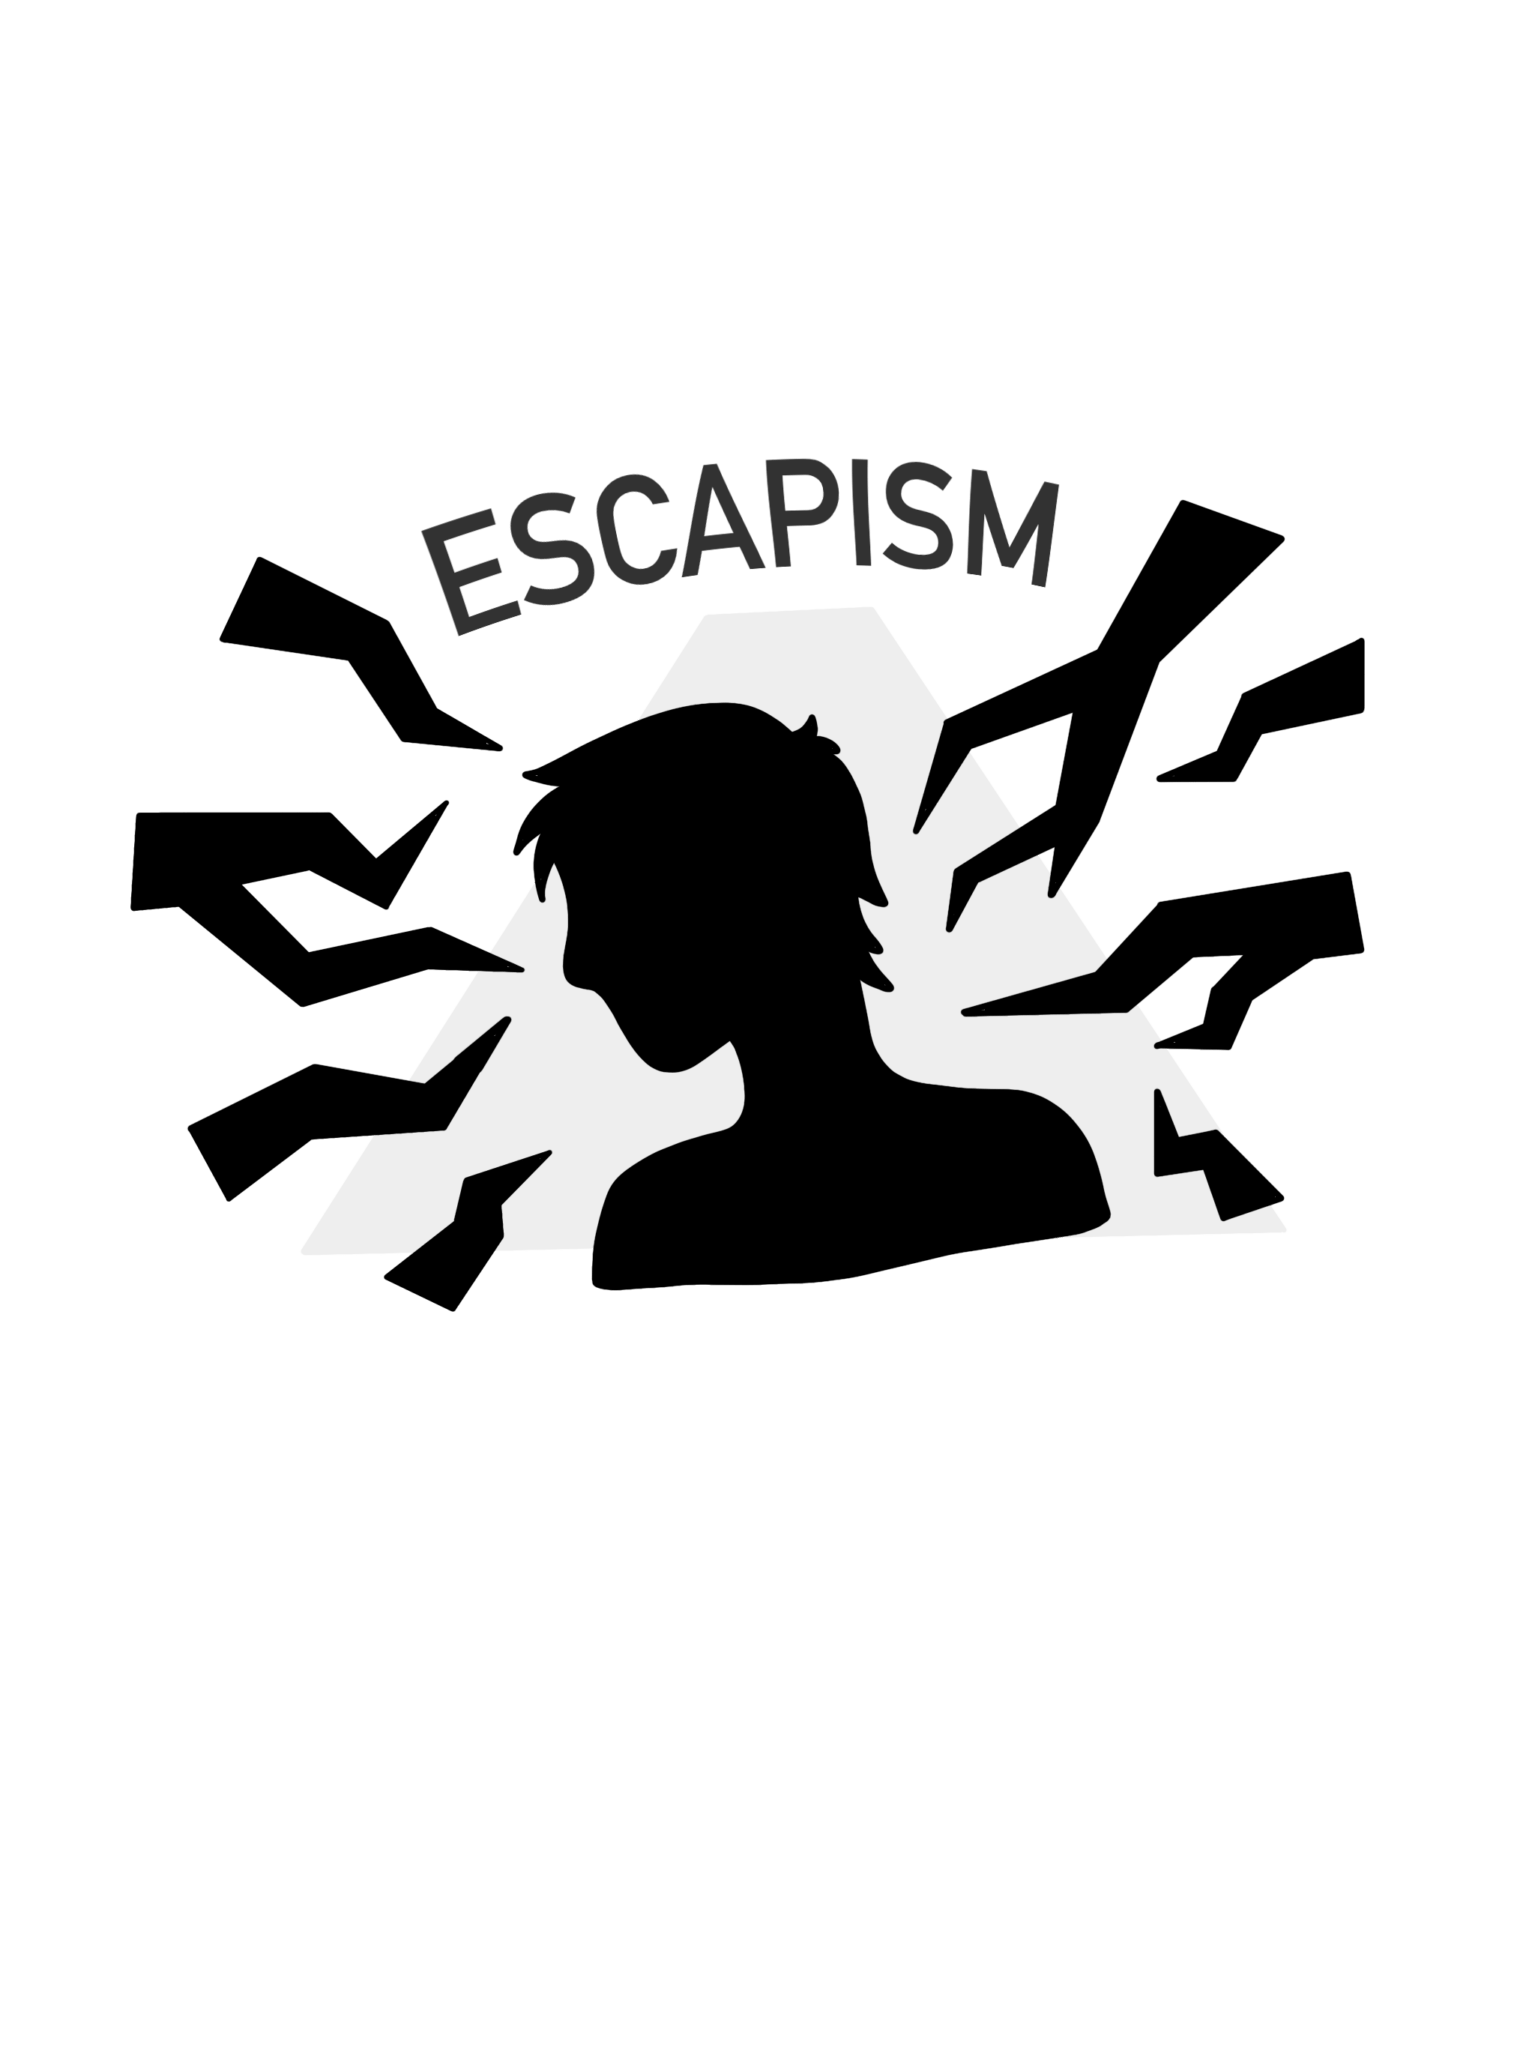 Escapism: Creative solution to hard times